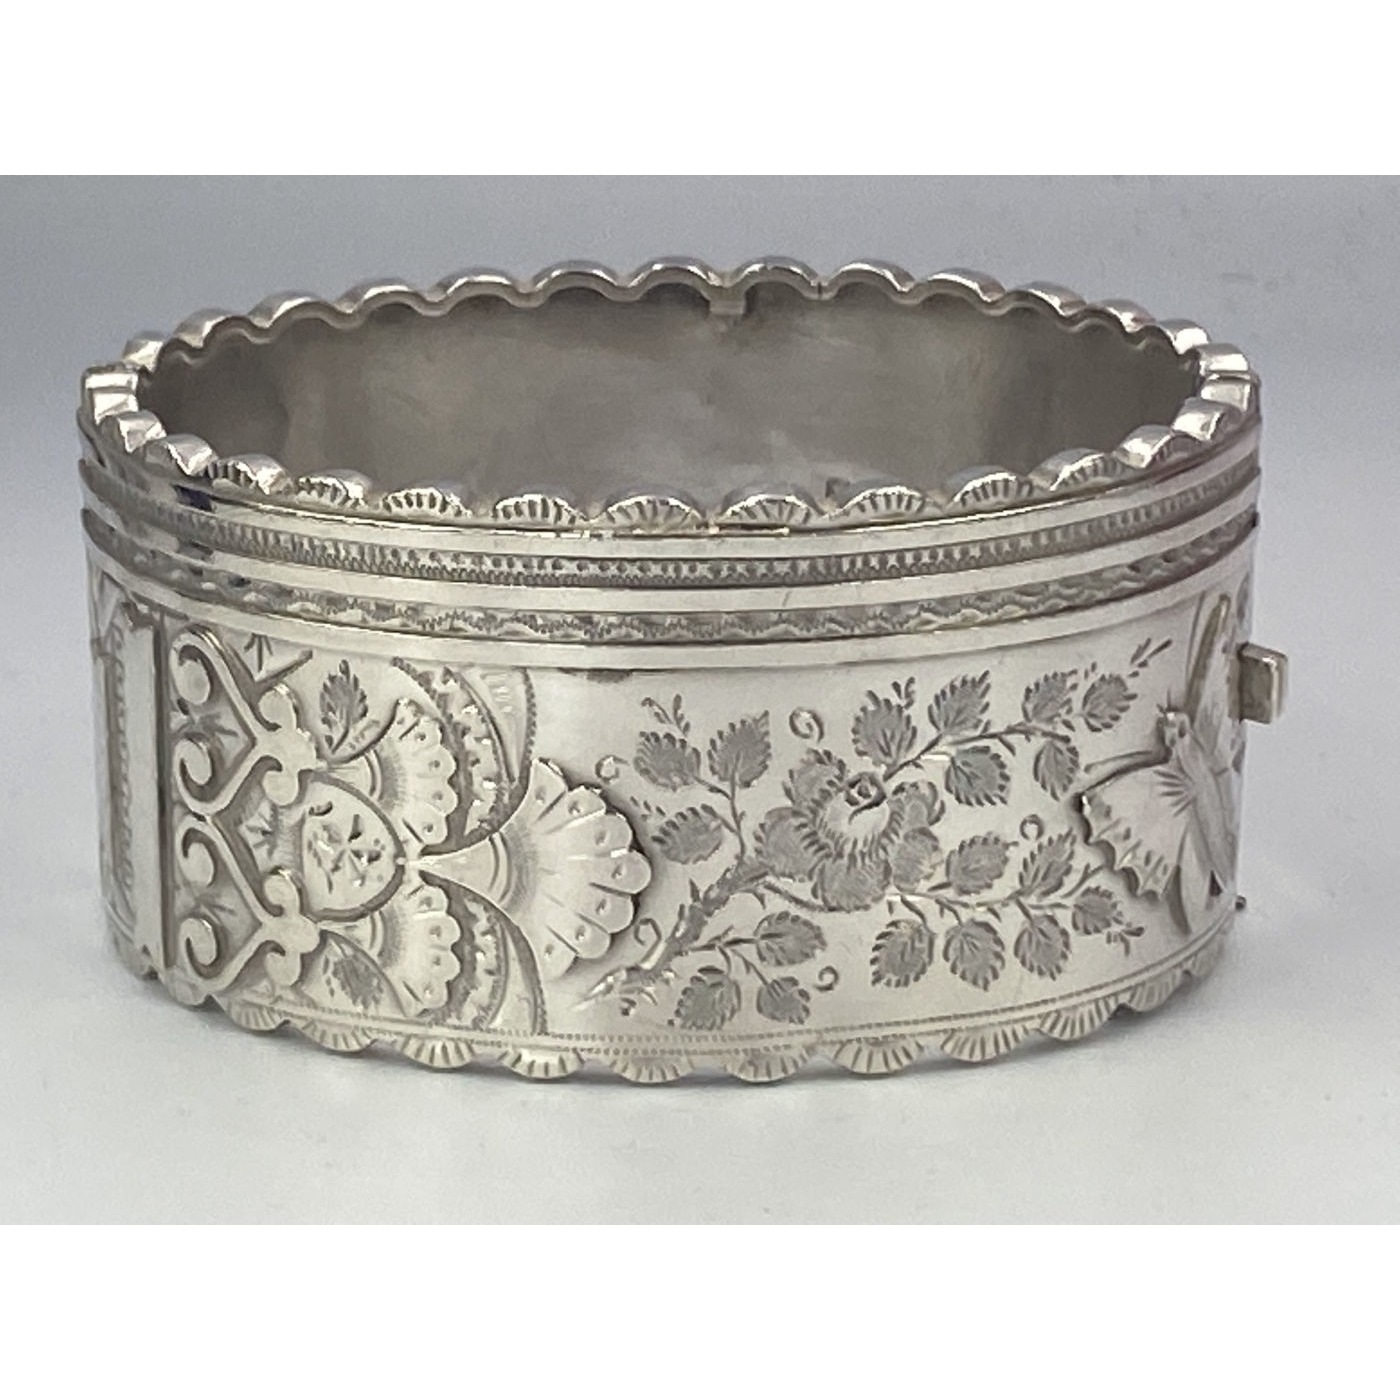 Scalloped Edge with Hearts, Flowers, and Butterfly Antique English Silver Bangle